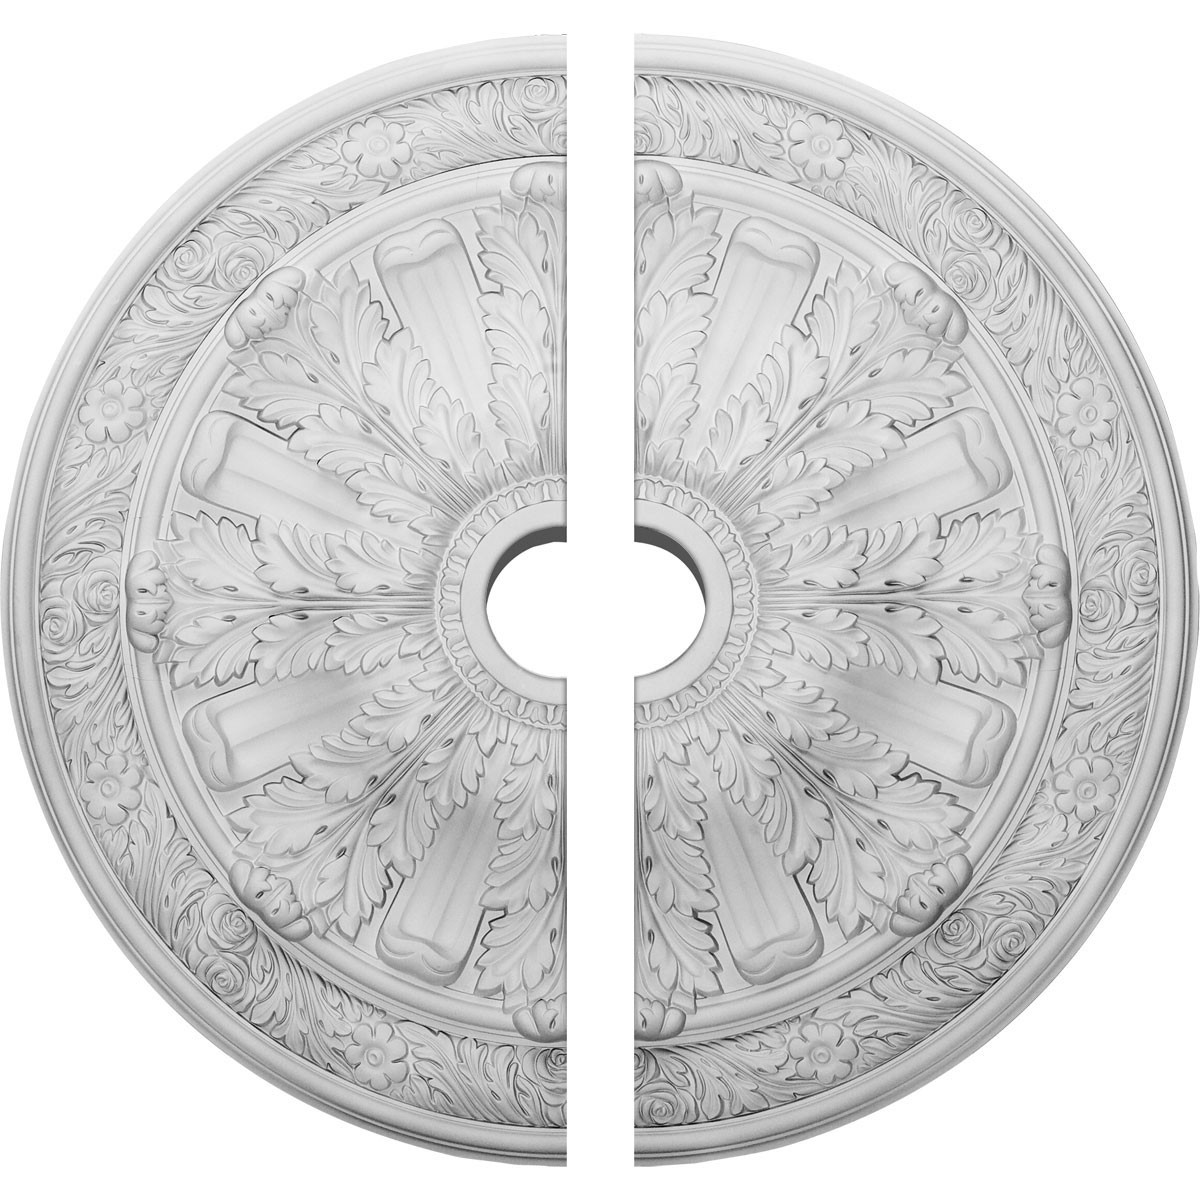 """EM-CM30FL2 - 30""""OD x 3 7/8""""ID x 3 1/4""""P Flagstone Ceiling Medallion, Two Piece (Fits Canopies up to 3 7/8"""")"""